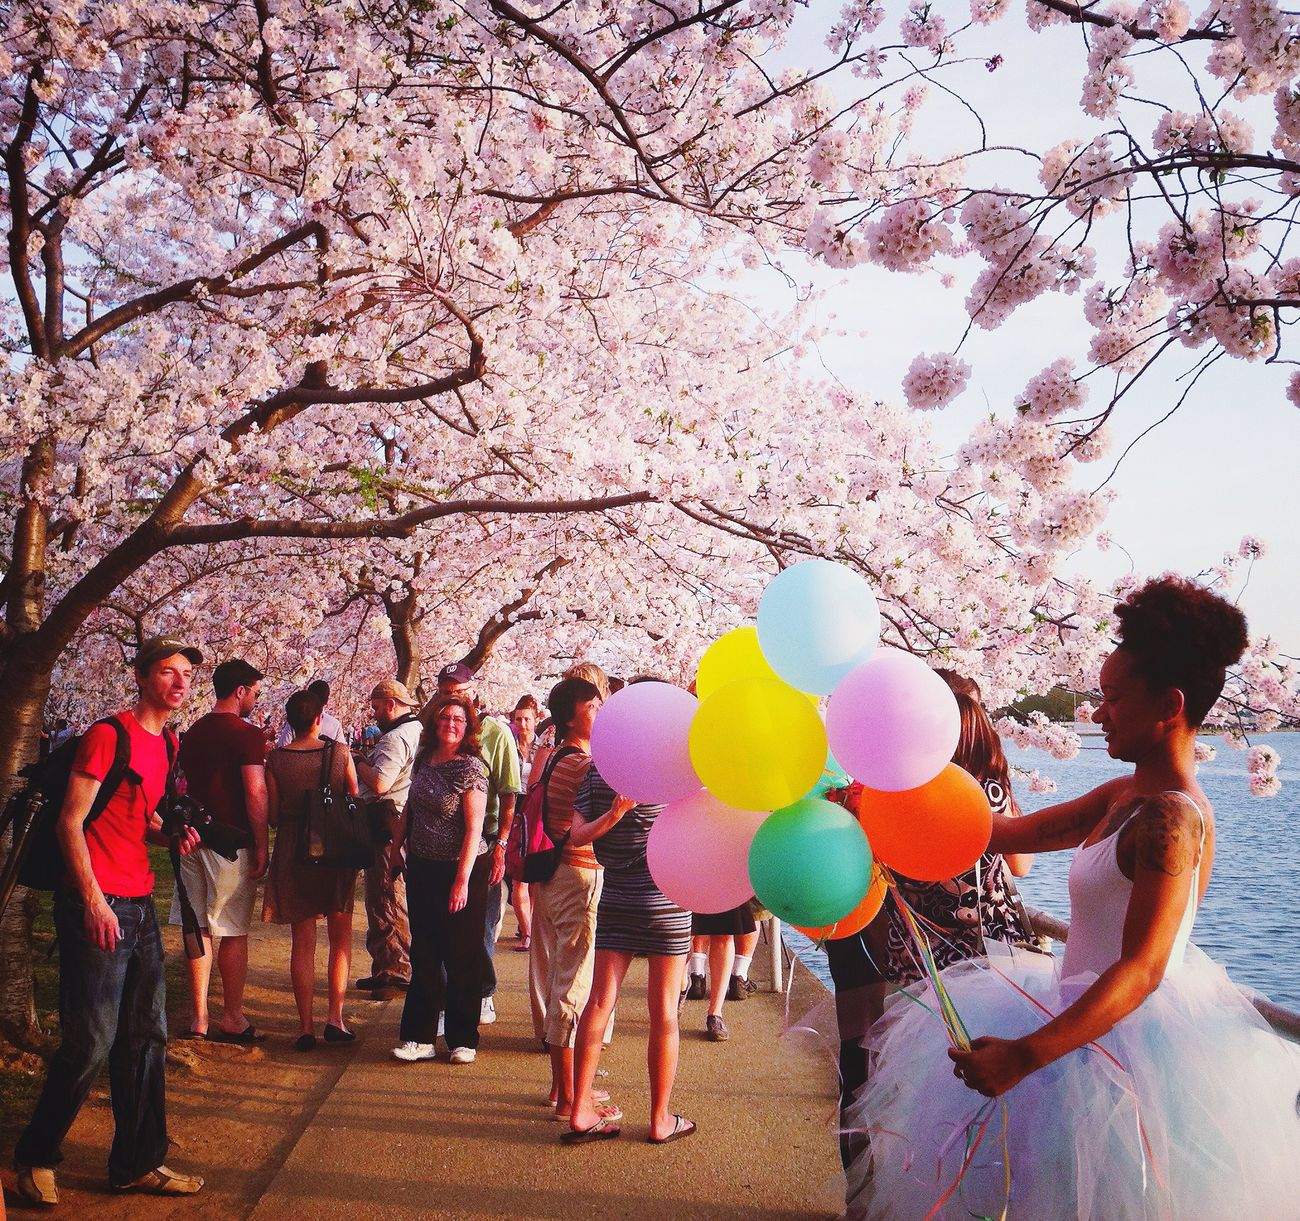 Cherry blossoms, balloons, and tutus 😍🌸🎈💃🏾 Cherry Blossoms Spring